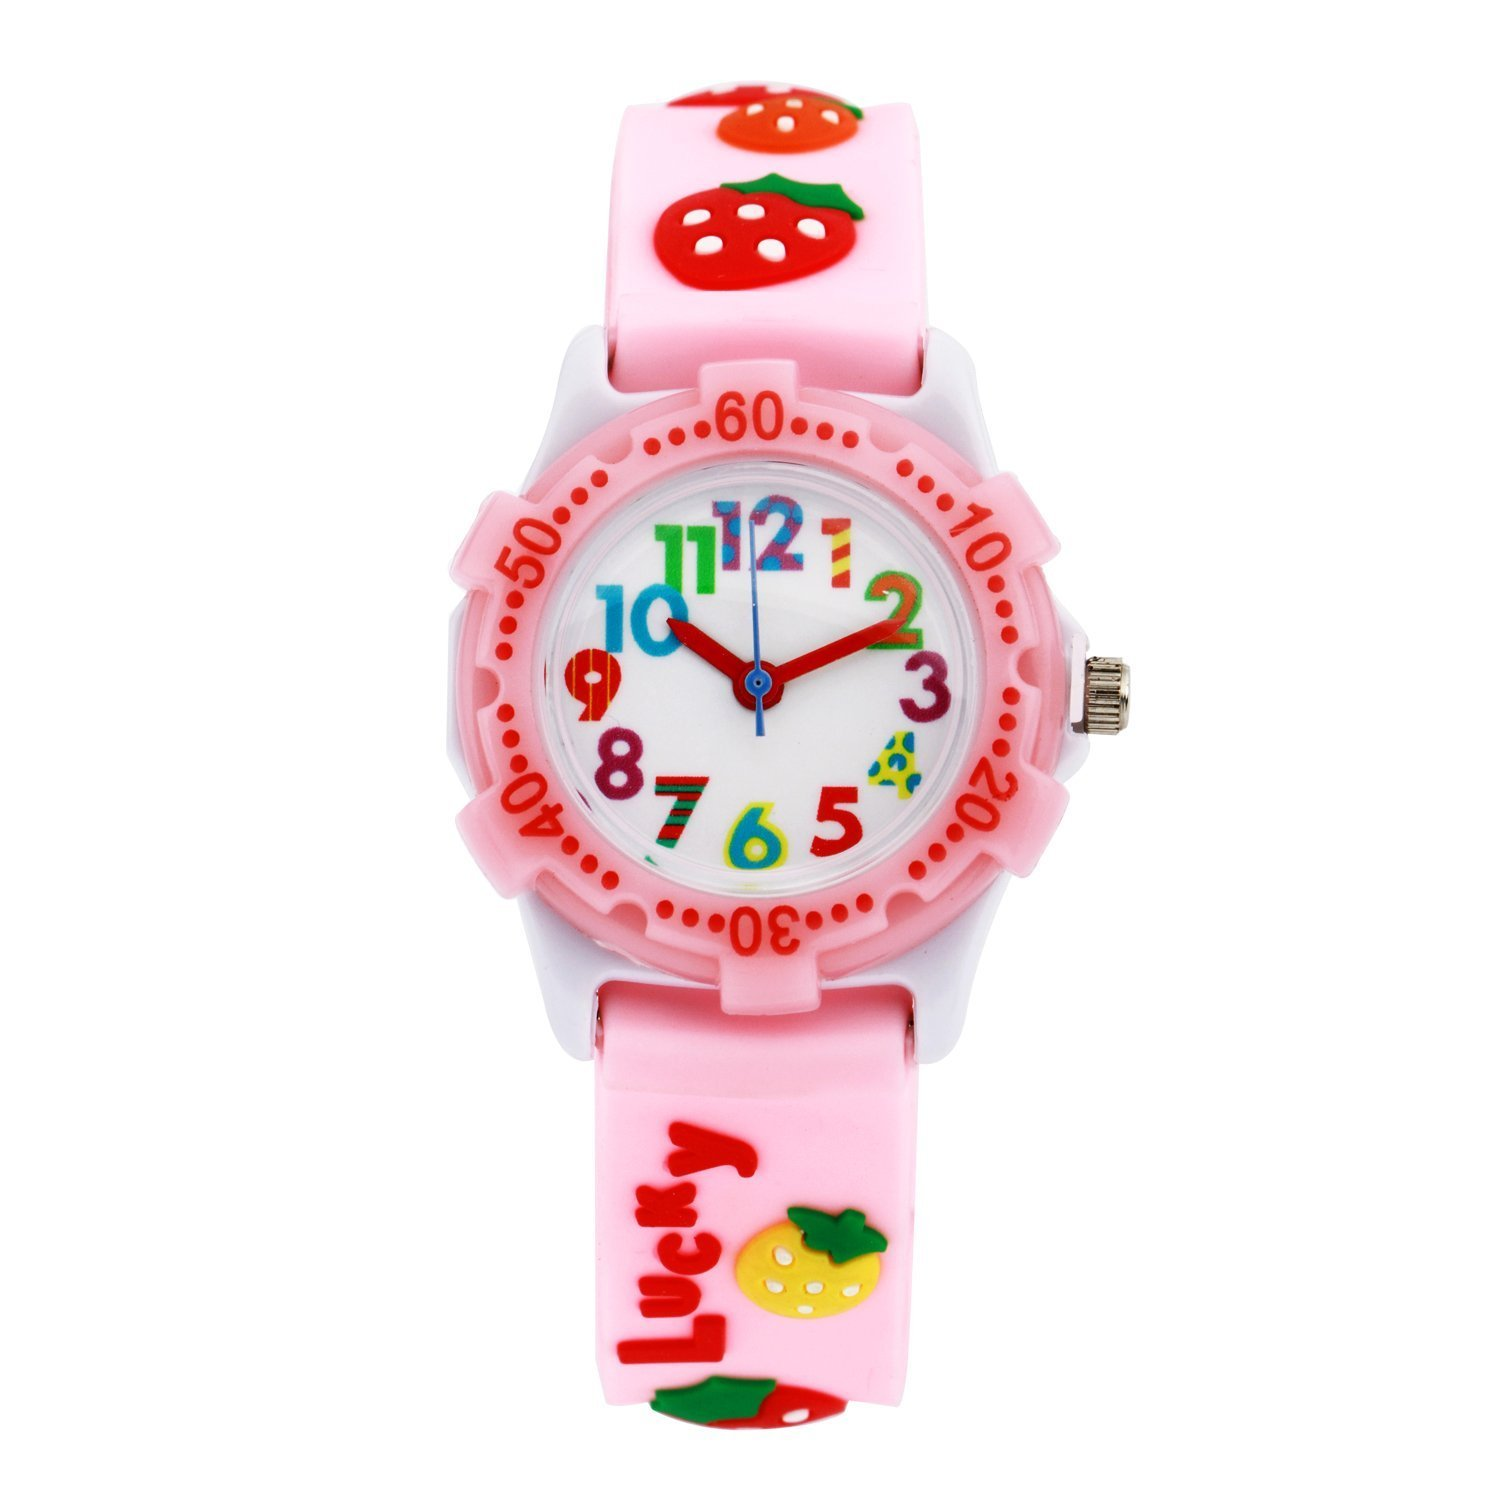 ParaCity Waterproof 3D Cute Cartoon Digital Silicone Wristwatches Time Teacher Gift for Little Girls Boy Kids Children…